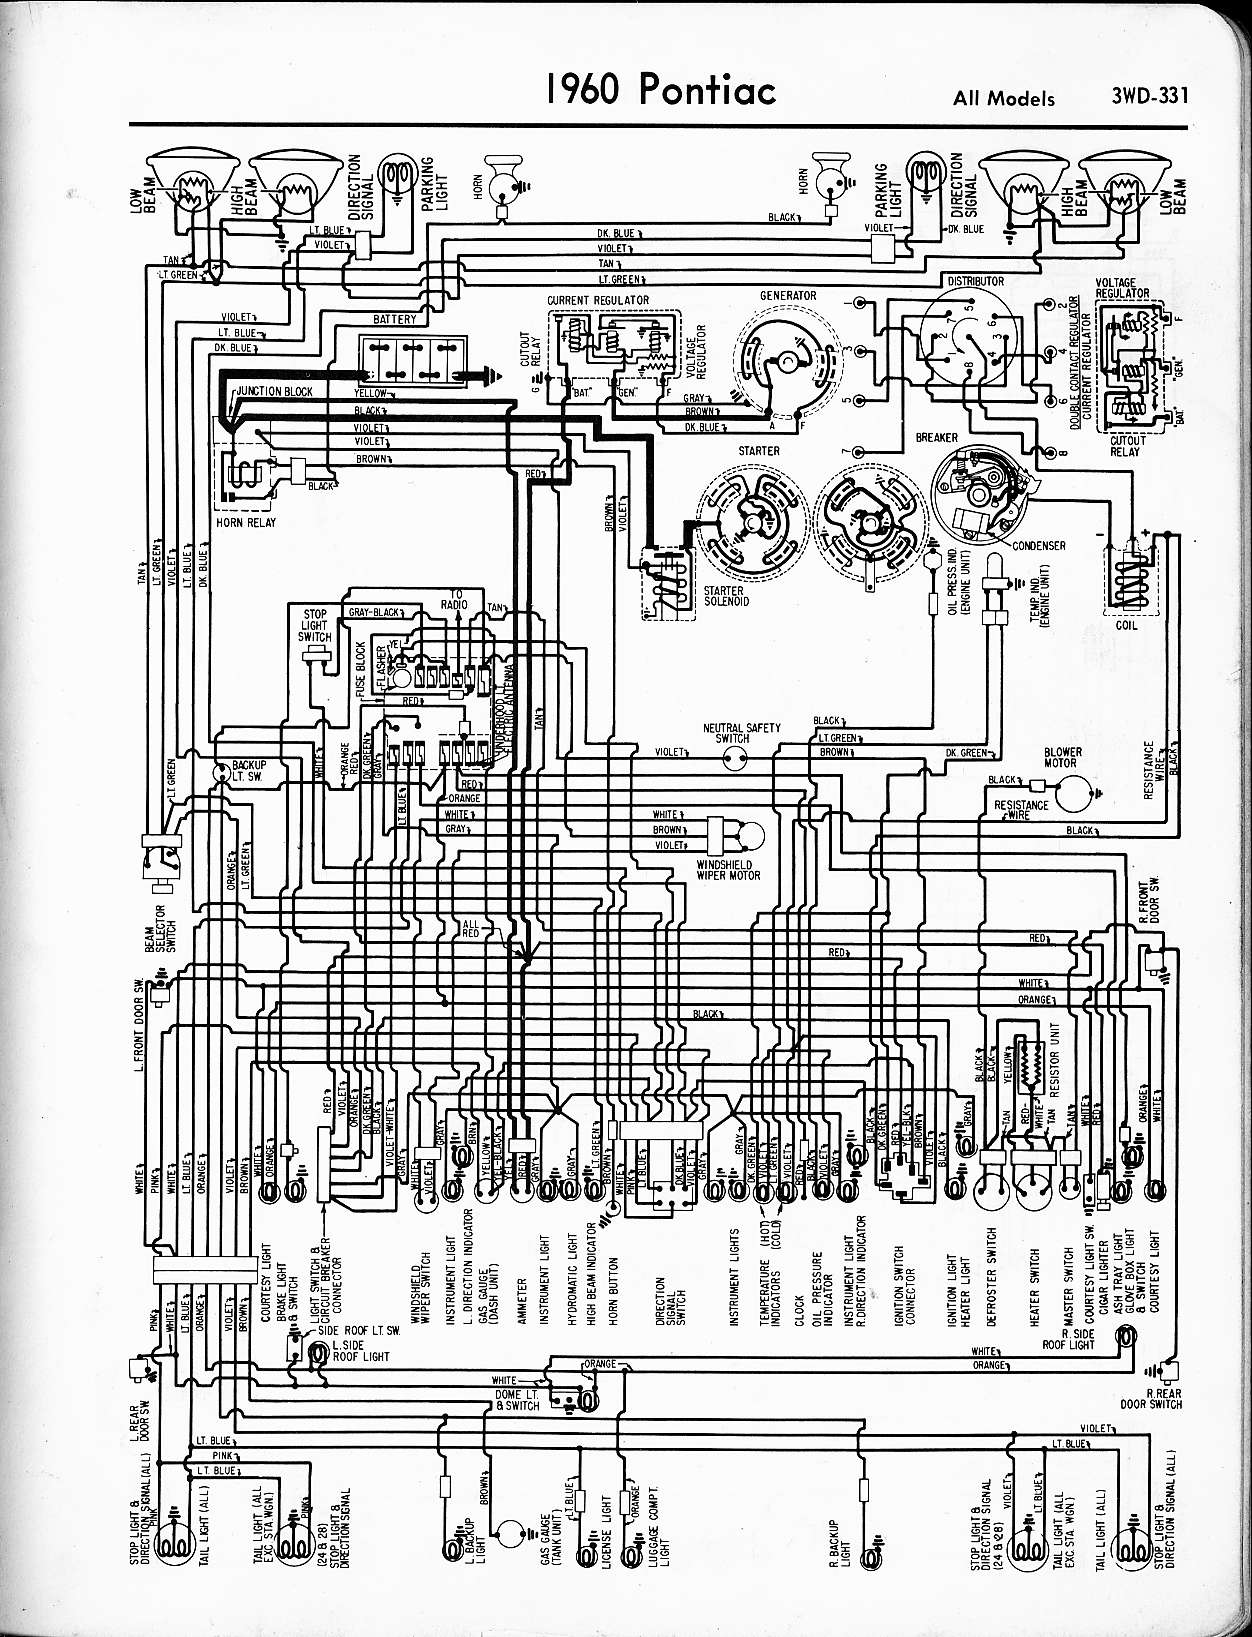 Wiring Diagrams Additionally Volvo 740 Ignition Wiring Diagram As Well